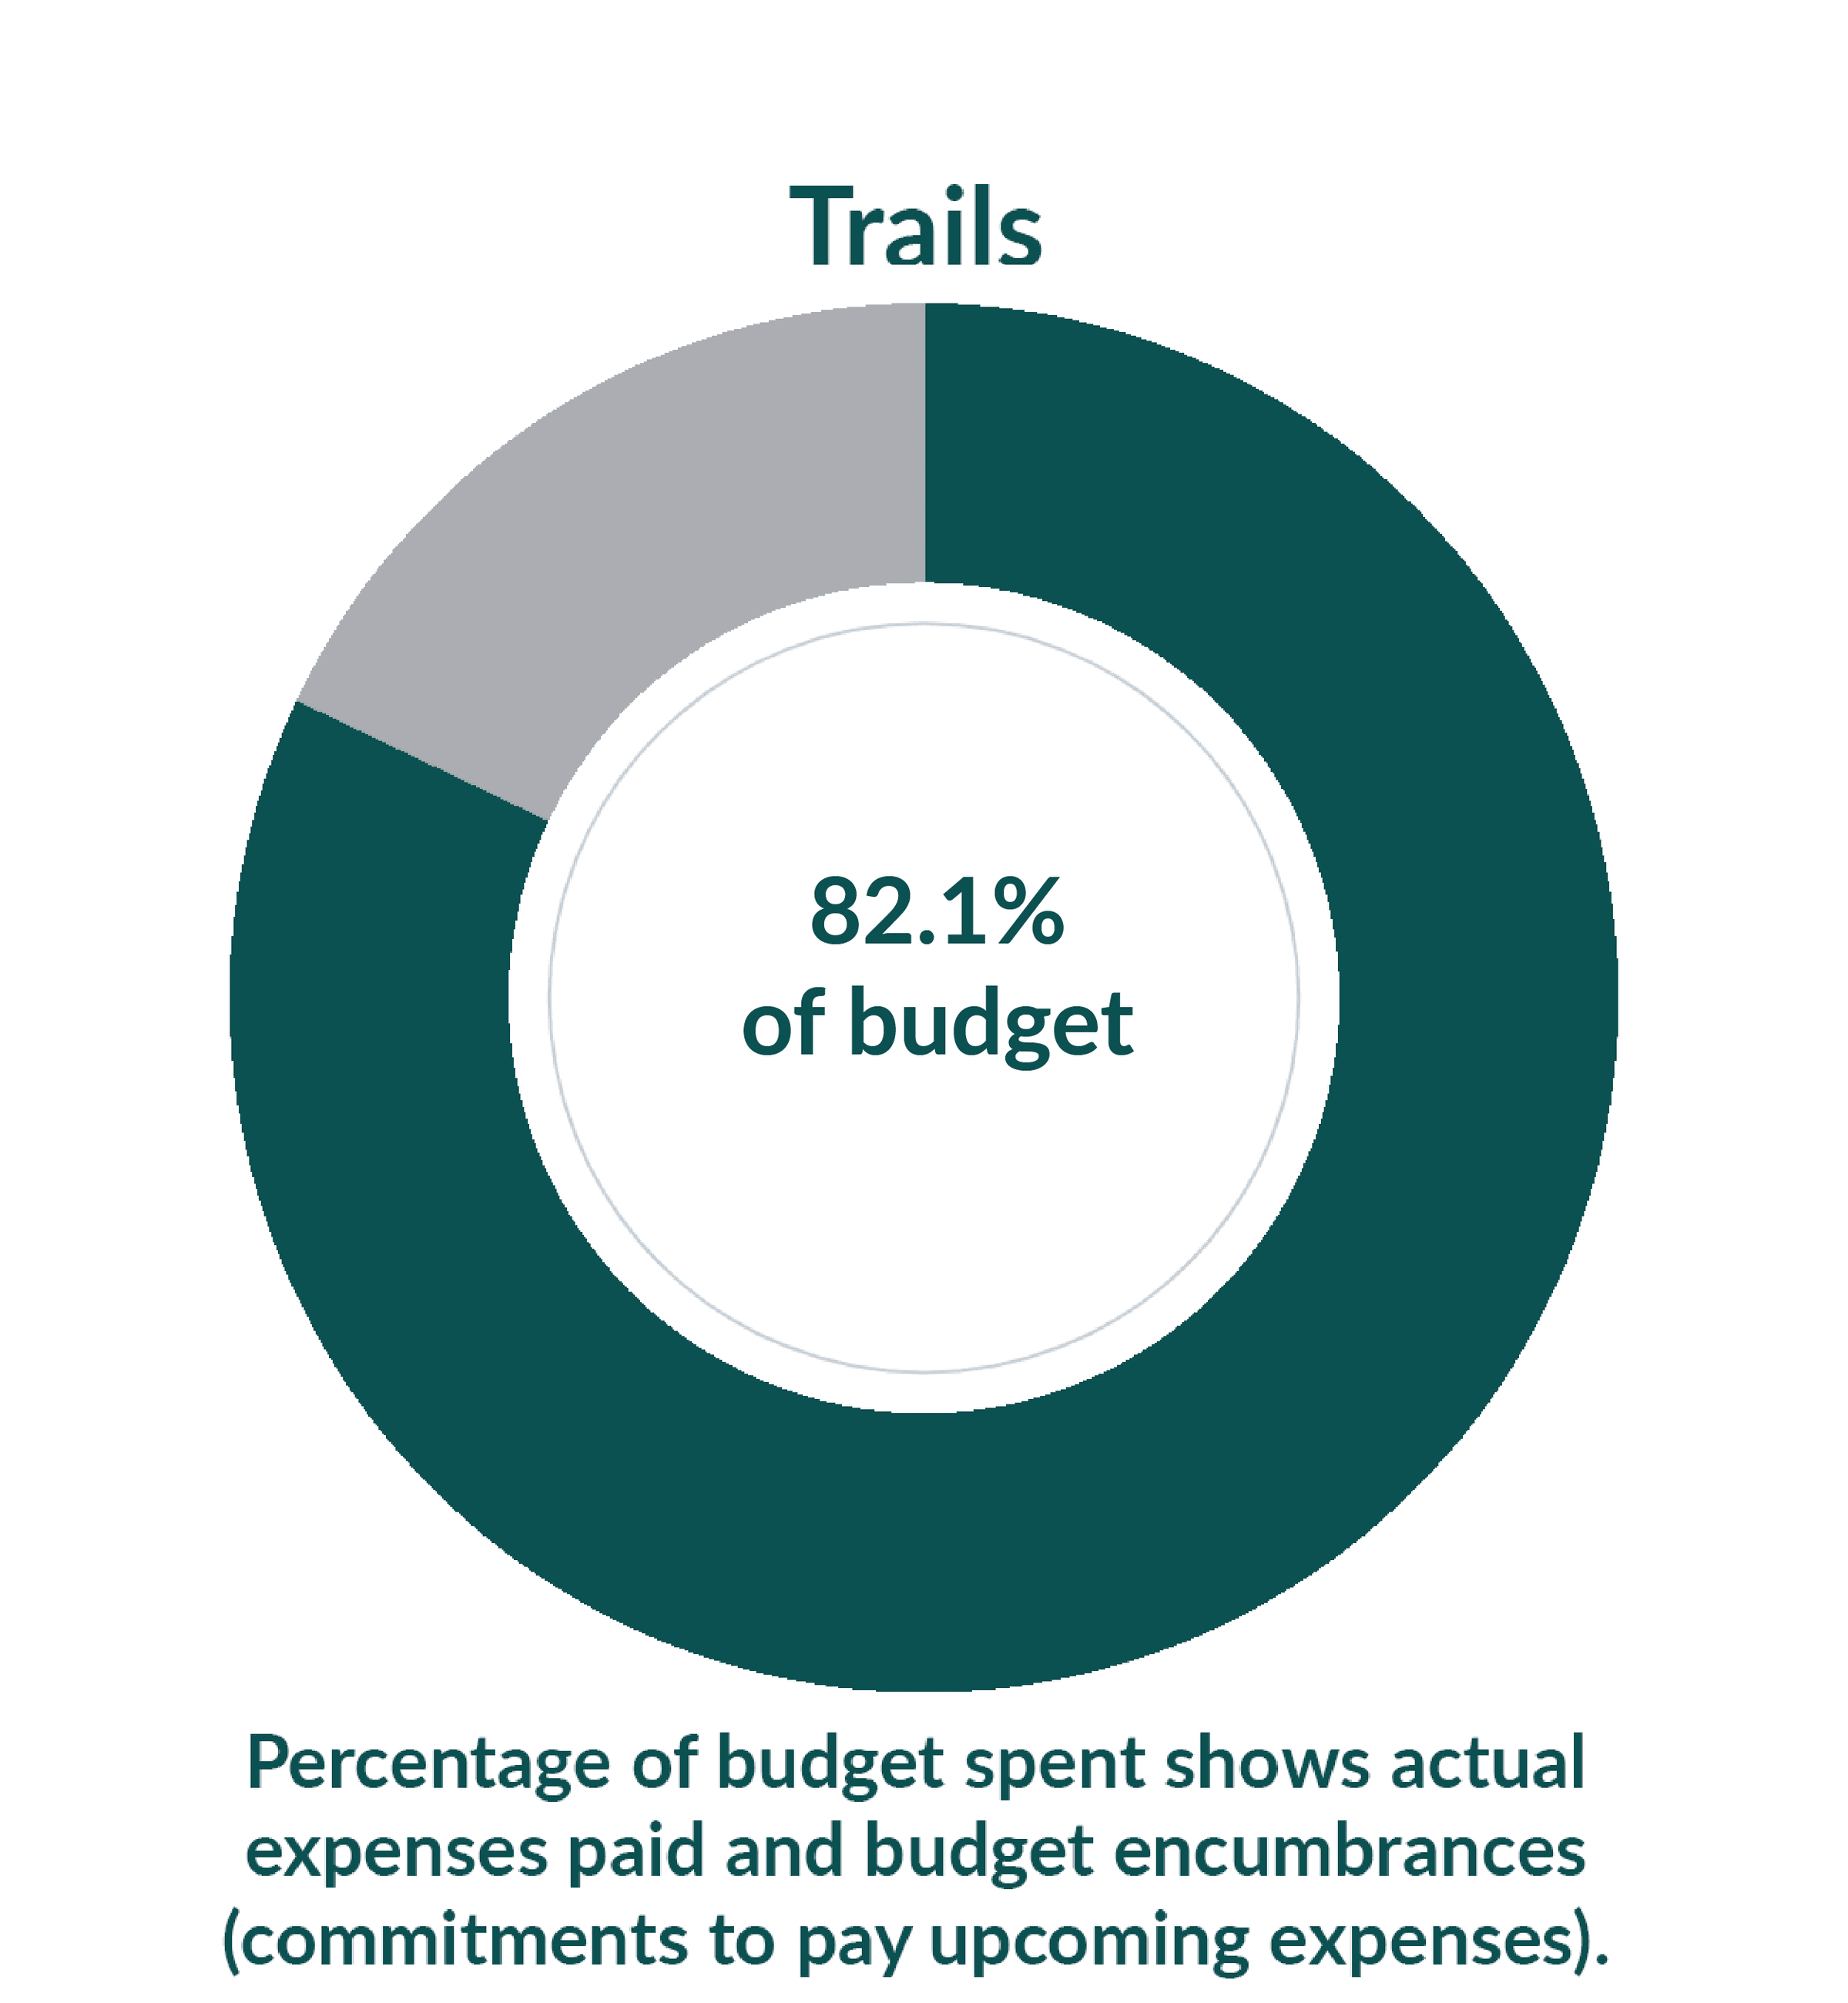 Trails: 24.2% of budget used as of July 1, 2020